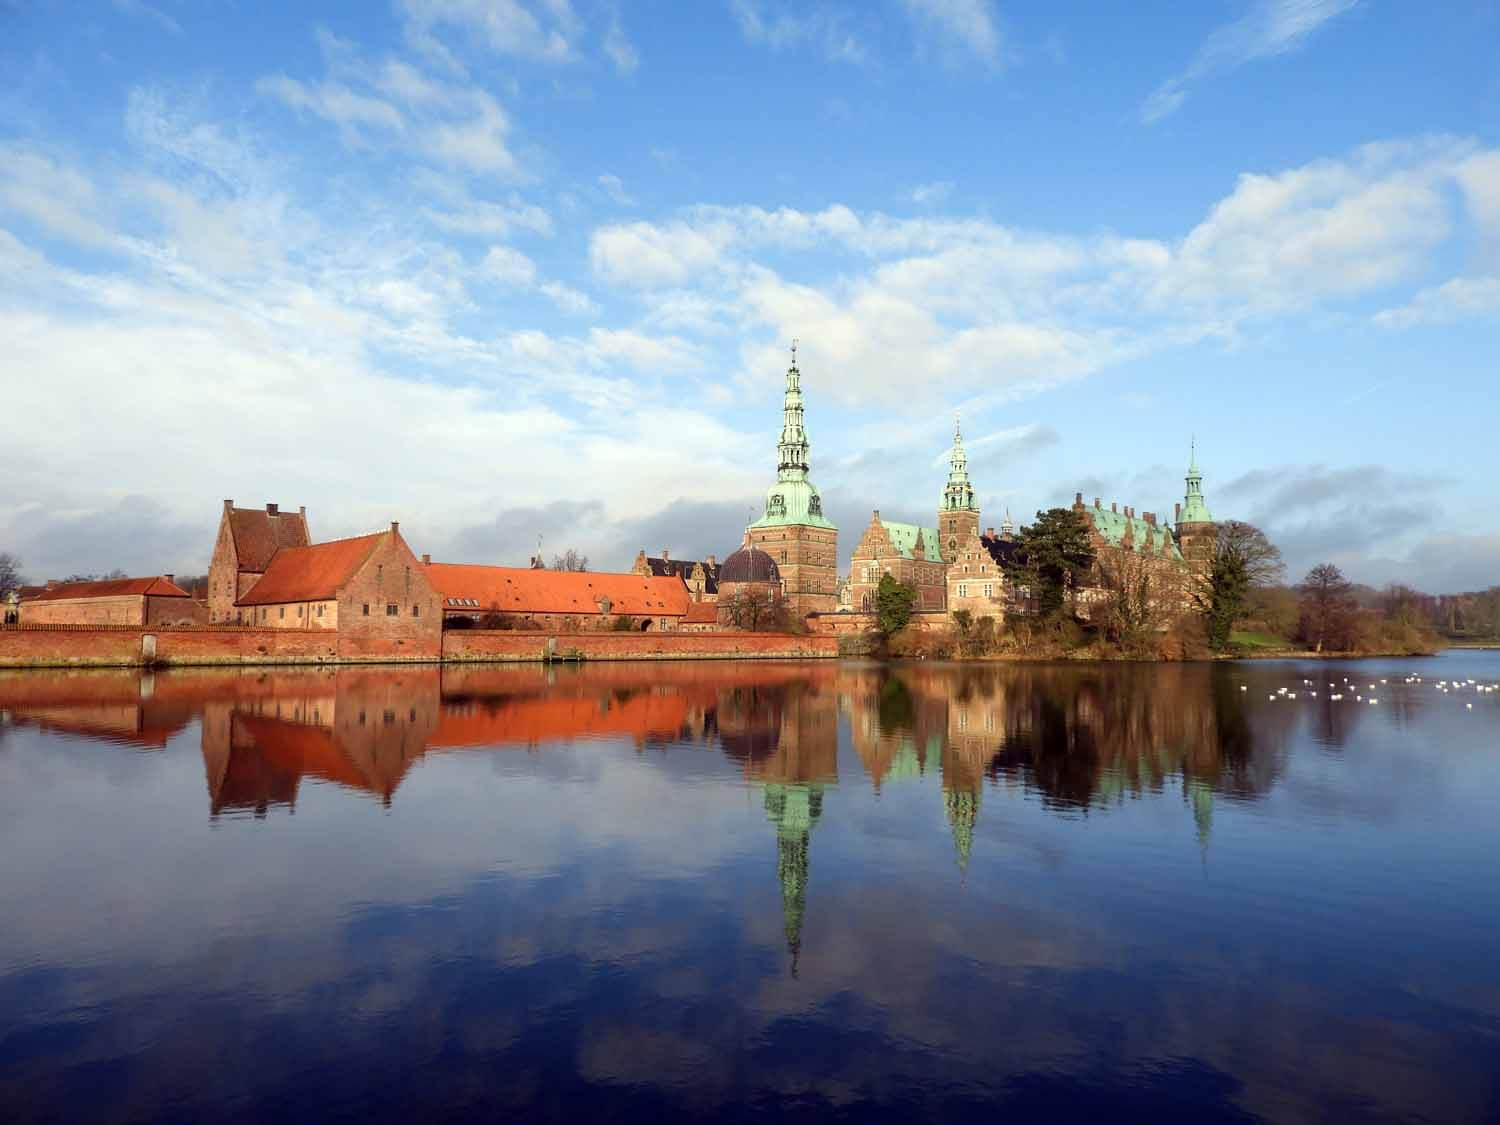 denmark-frederiksborg-slot-castle-reflection-bluesky-lake-slotssoen-hillerod.JPG